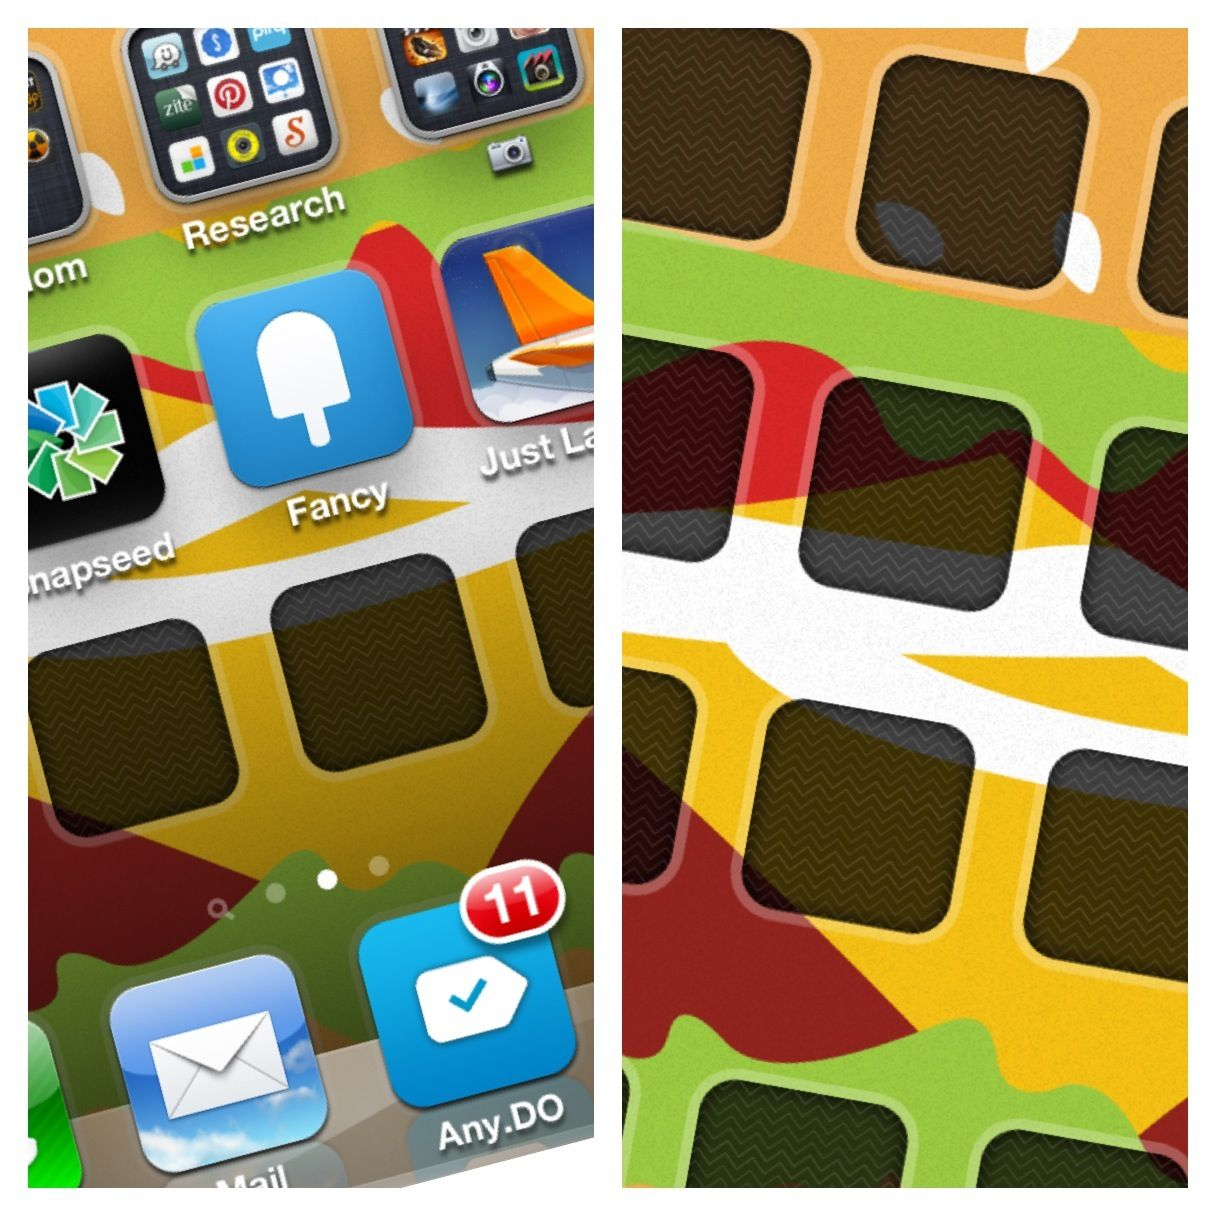 How to Make Your Very Own Custom iPhone/iOS Wallpaper